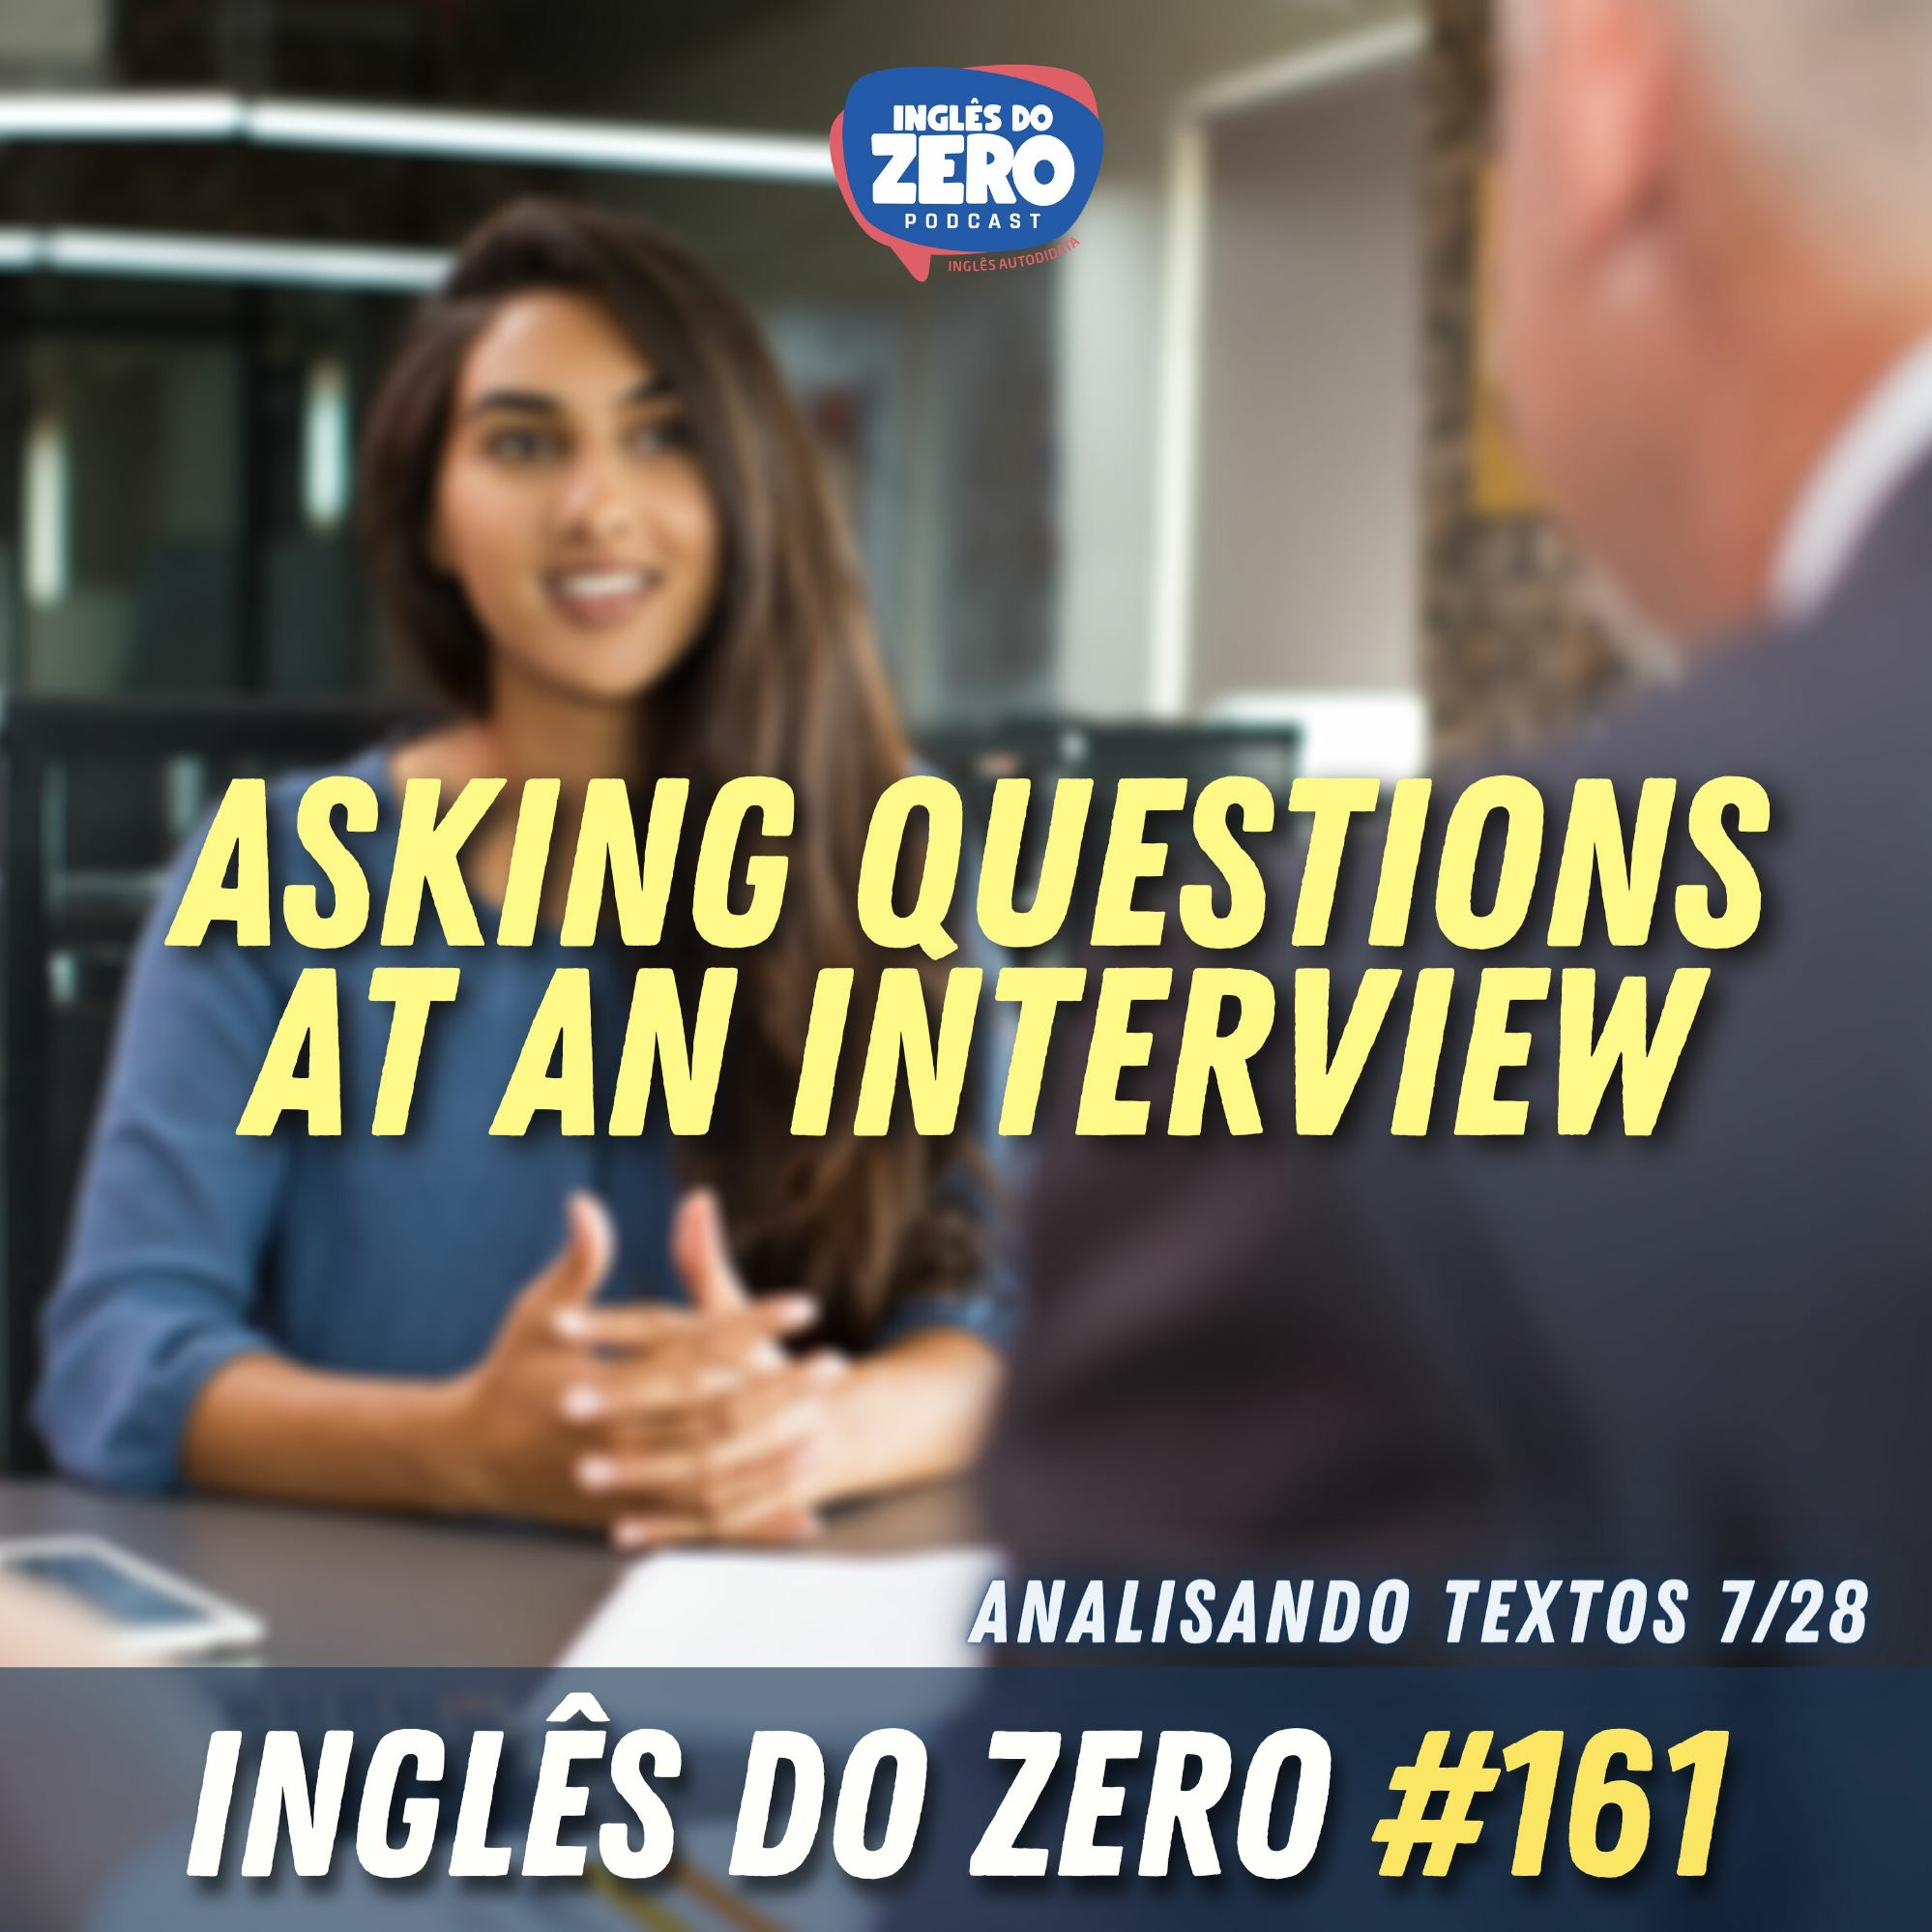 IDZ #161 - Asking Questions At An Interview [Analisando Textos - 7/28]